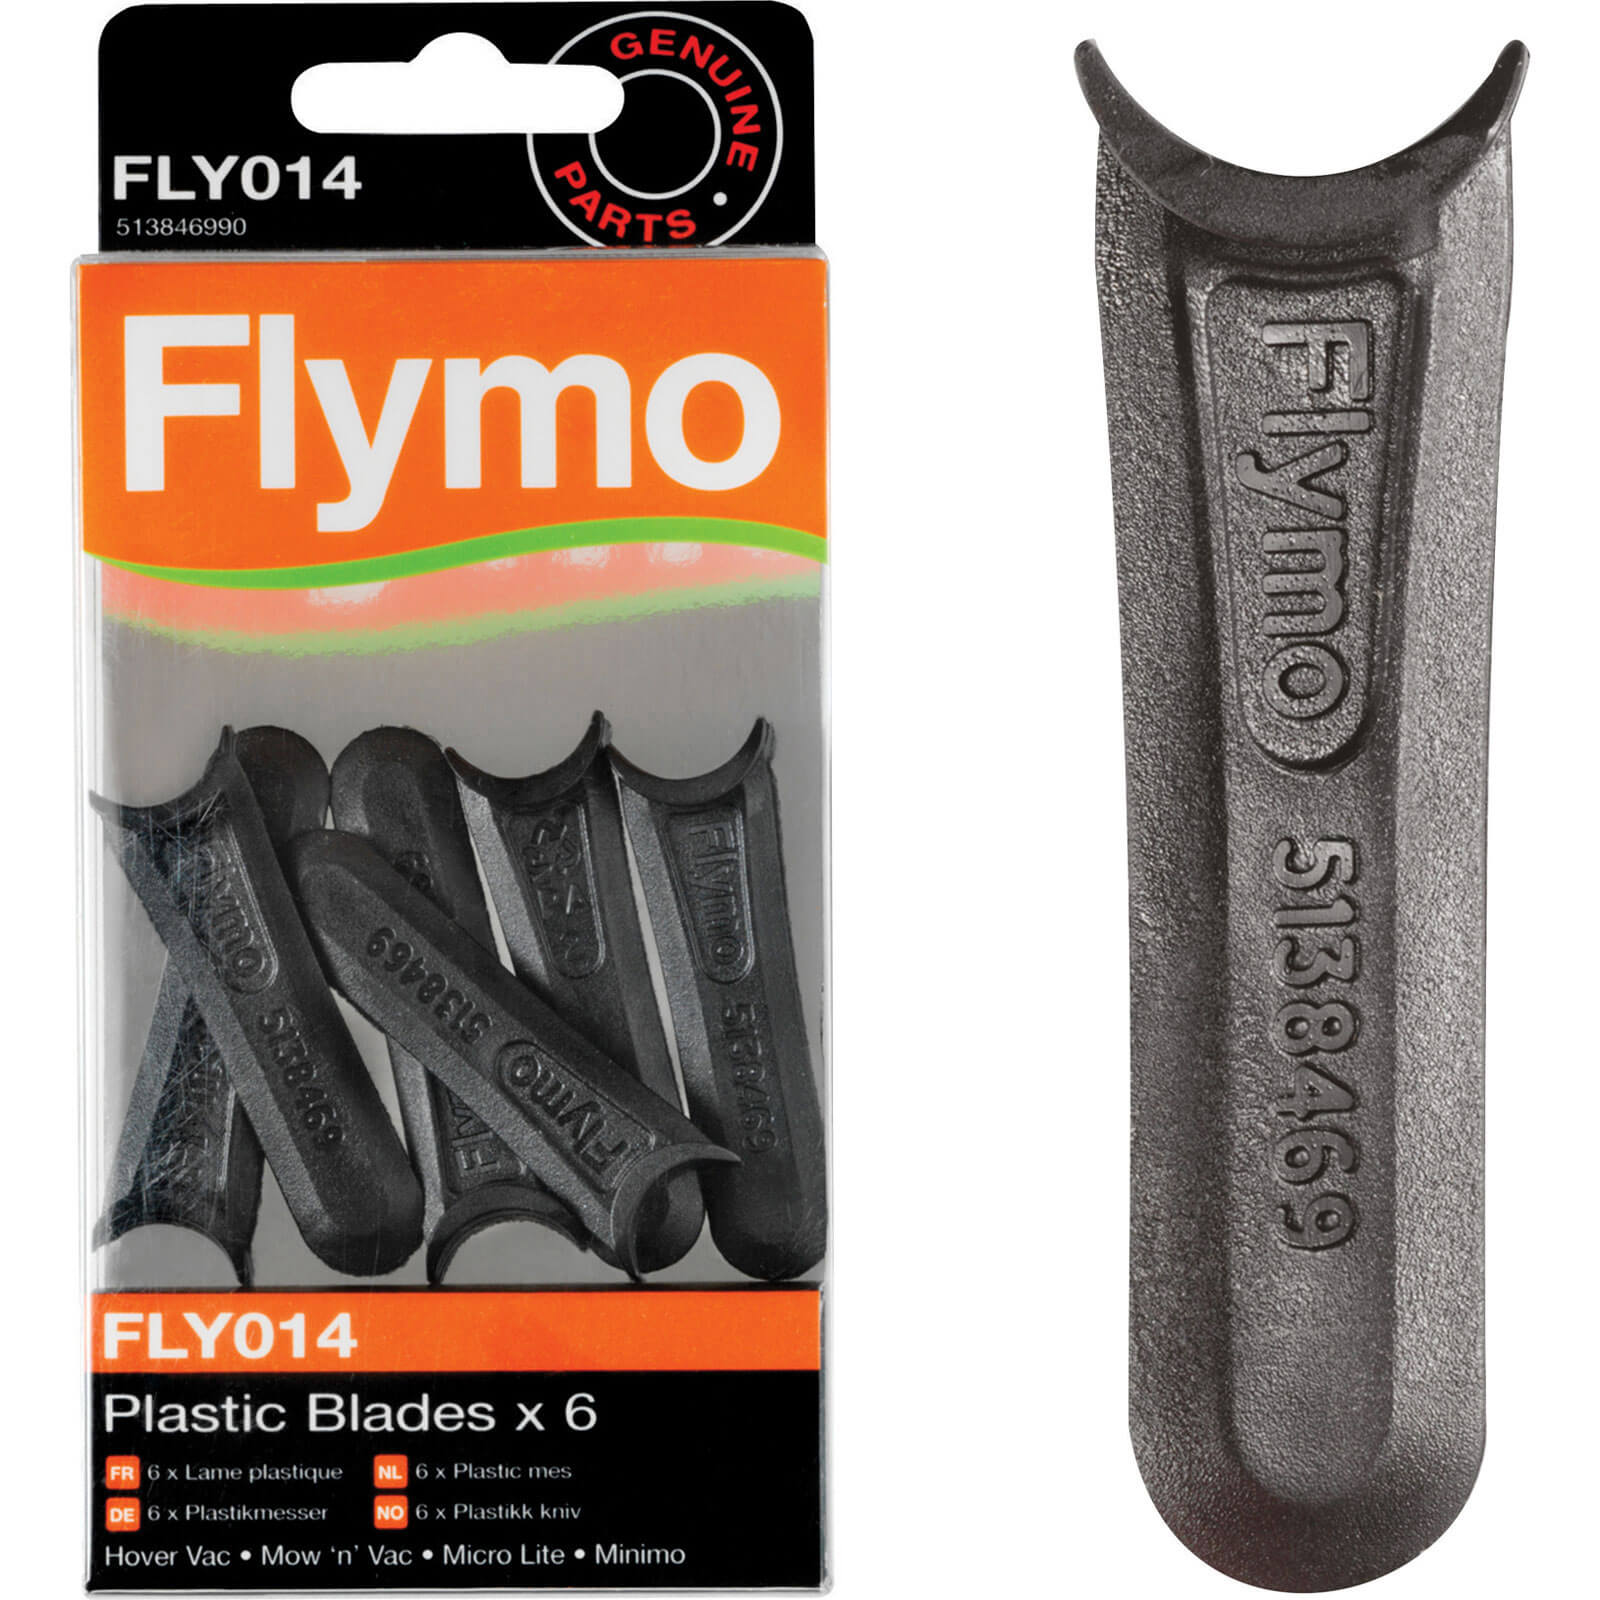 Flymo FLY014 Replacement Plastic Blades for Microlite, Minimo, Hover Vac & Mow n Vac Lawnmowers Pack of 6